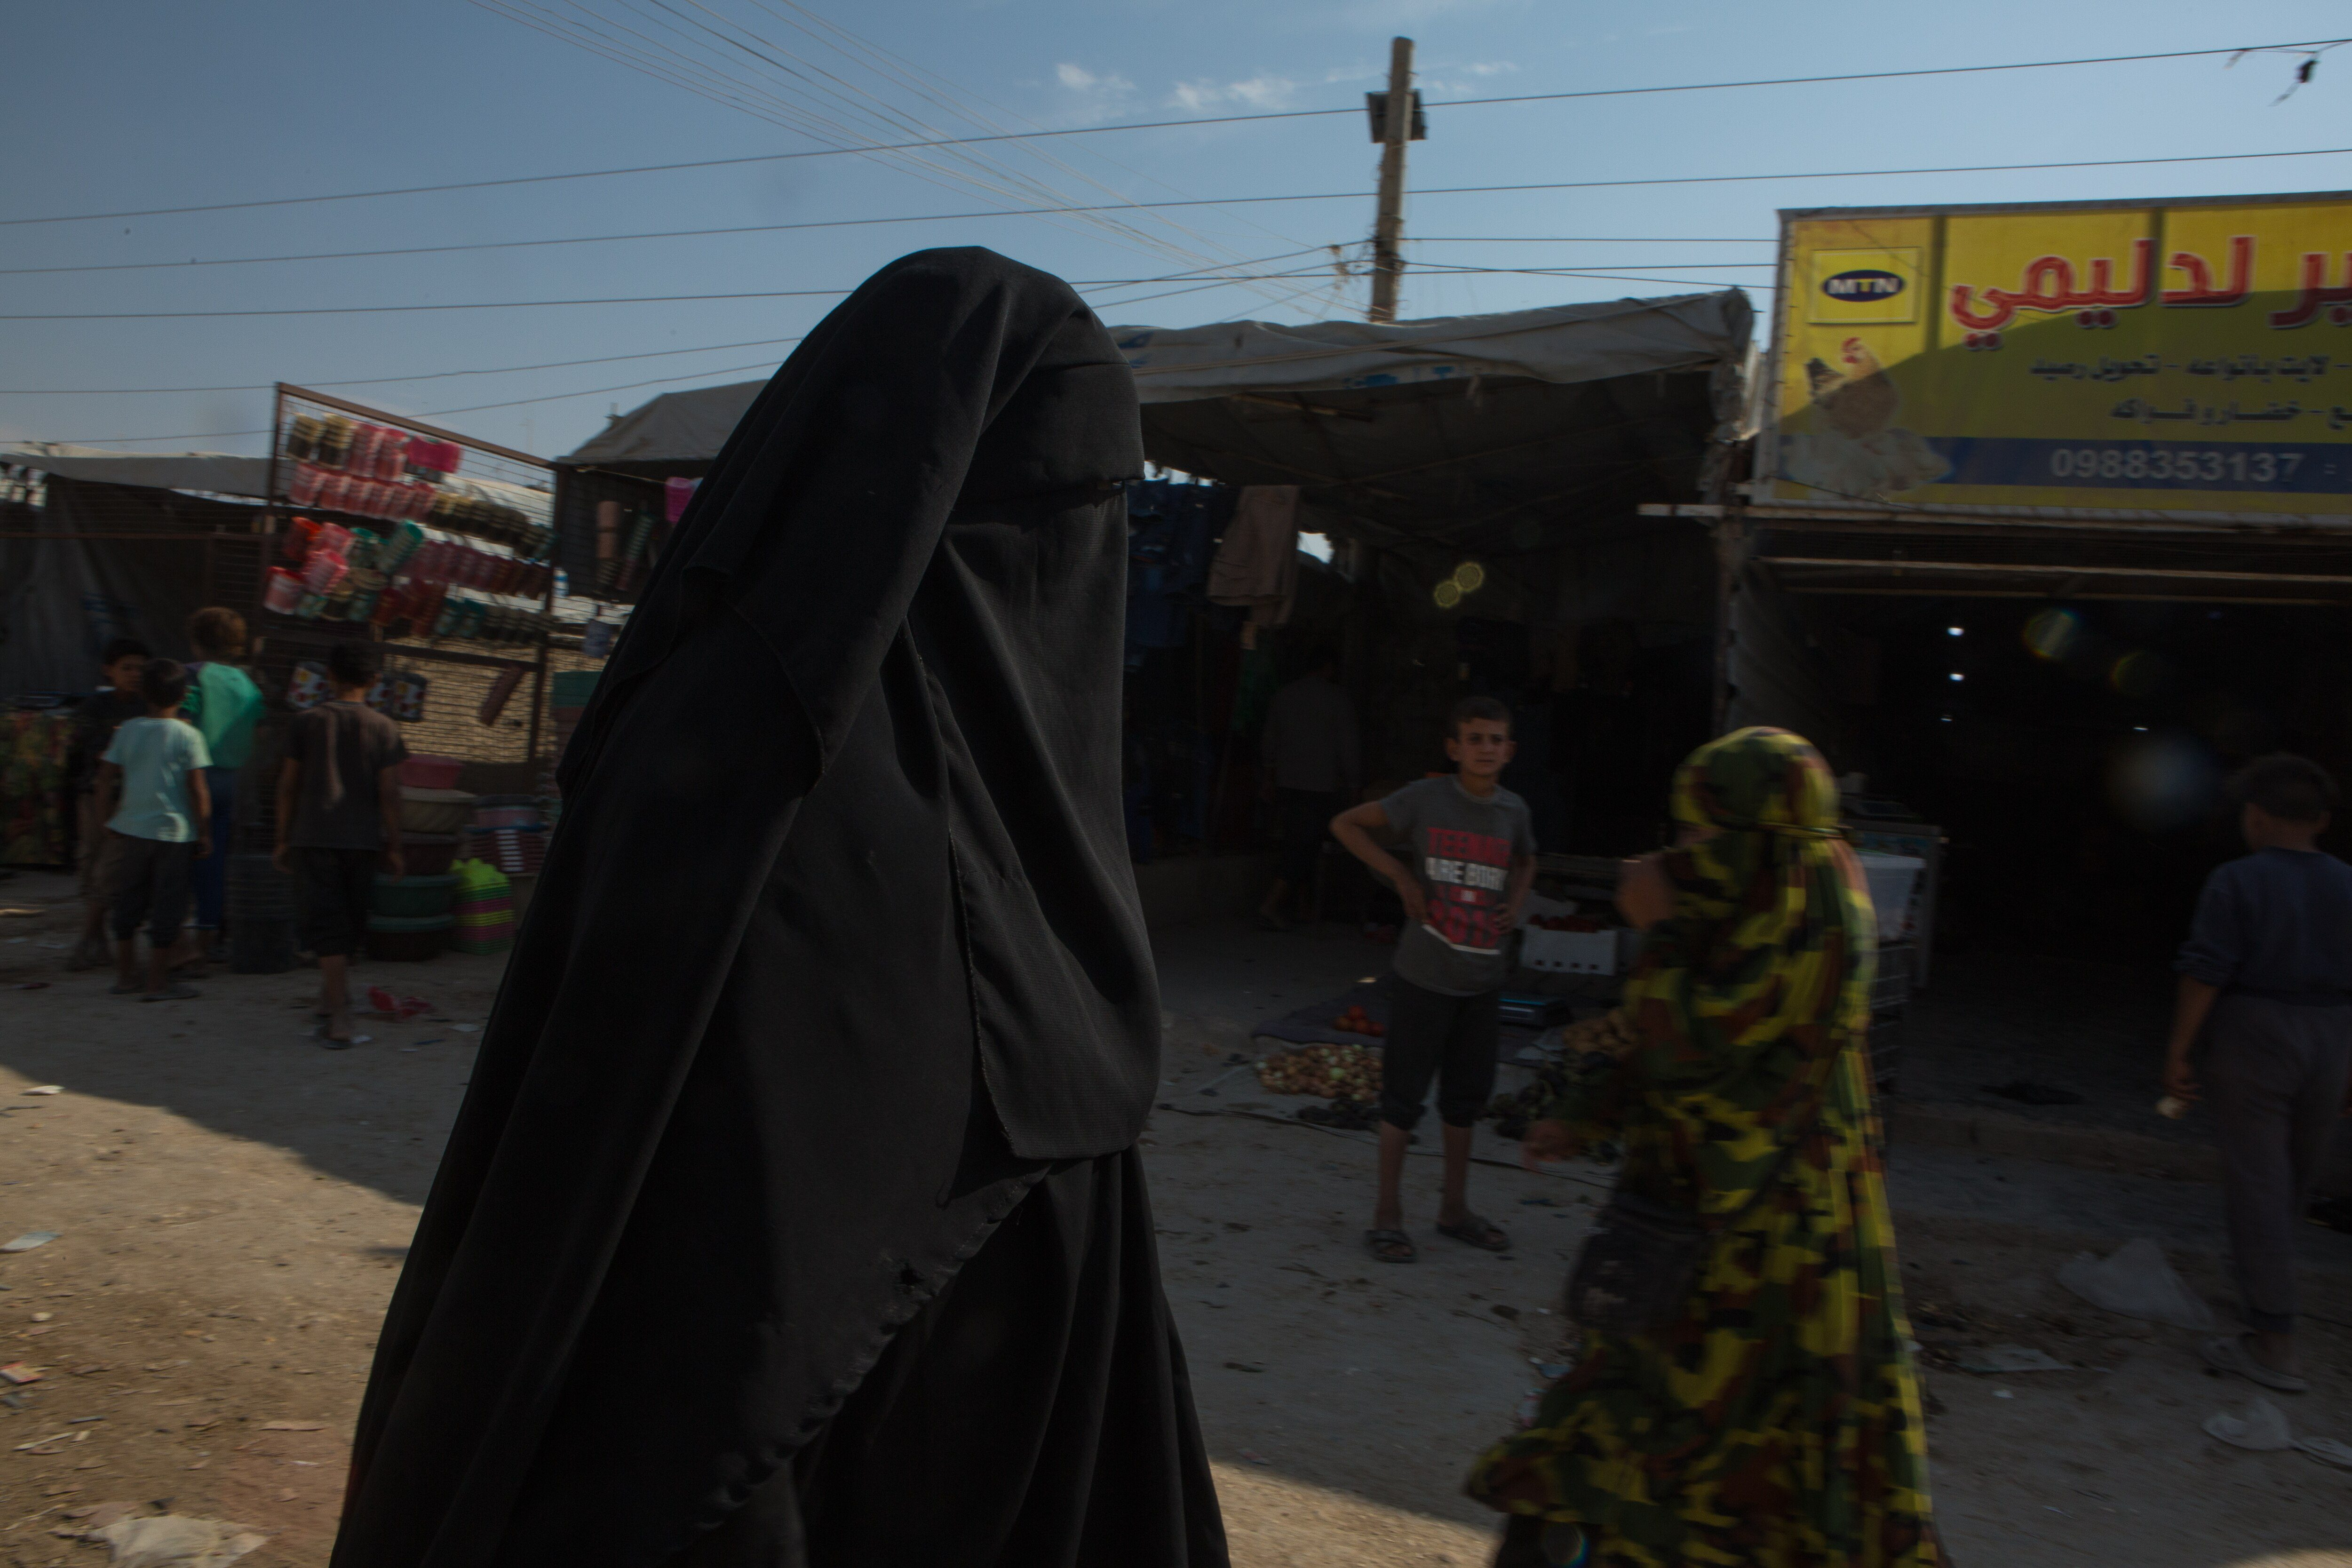 voa in al hol camp syria 16 october 2019 03 - <b>Khadija and Her Boys.</b> What It's Like Searching for Family Lost in the Islamic State - Заборона